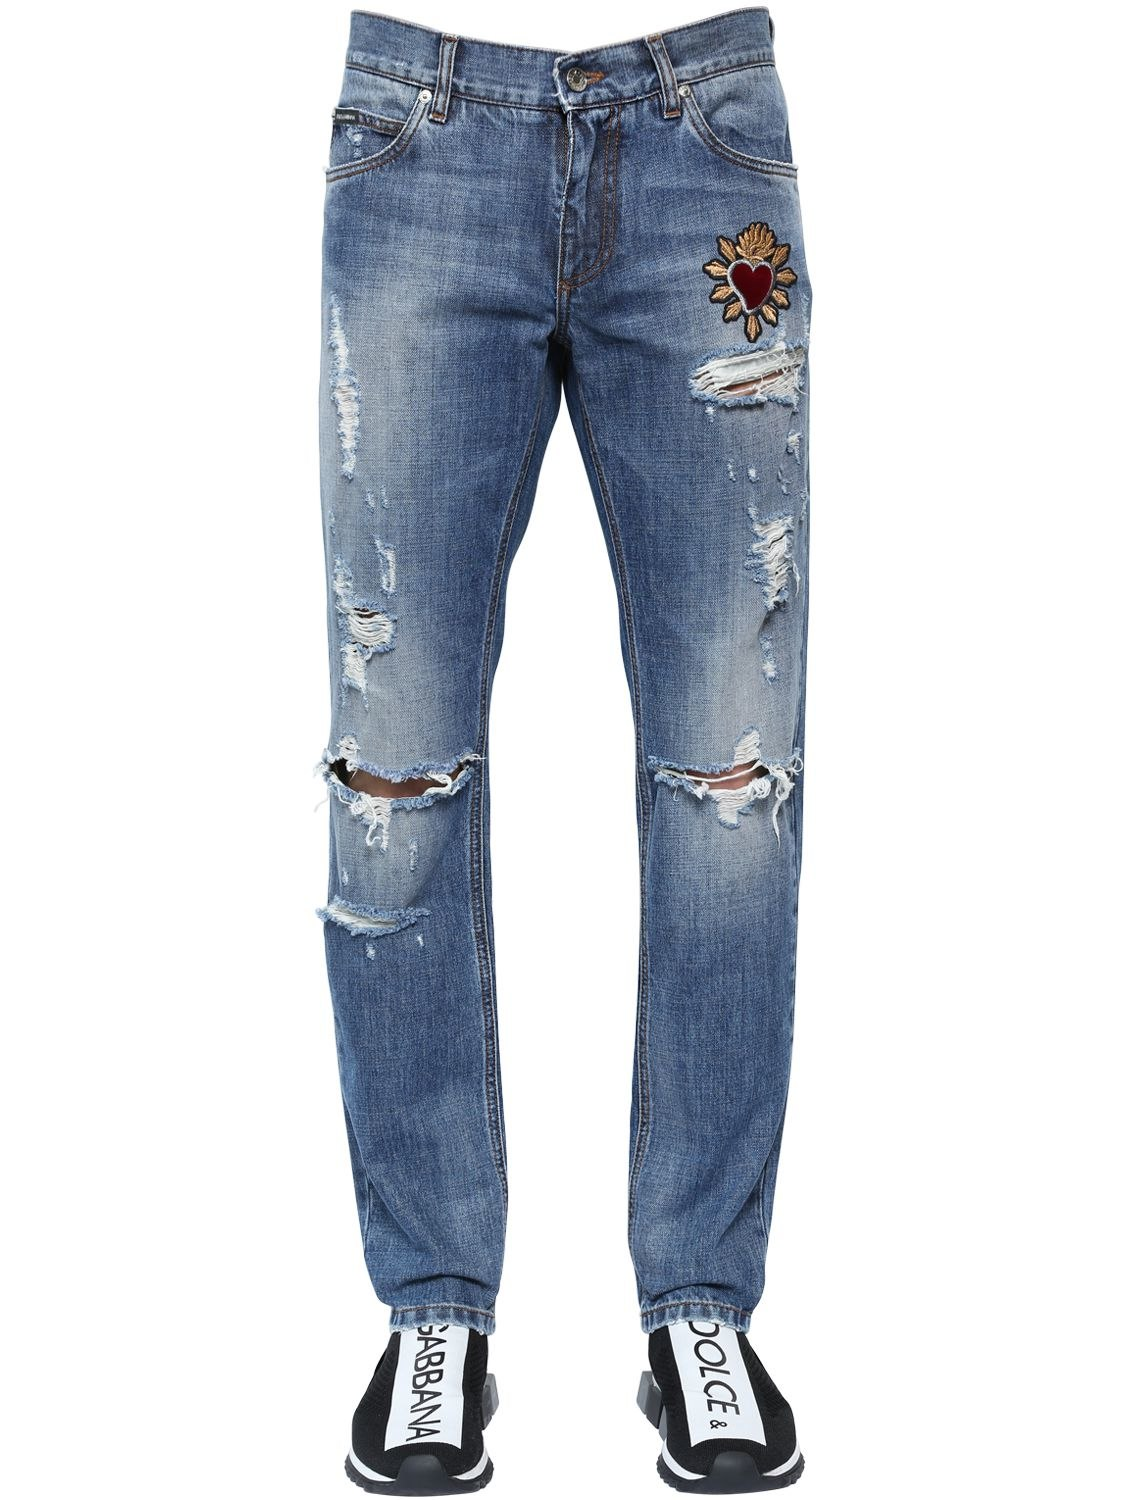 purchase cheap 1c63d d9e94 Jeans Uomo dolce & gabbana